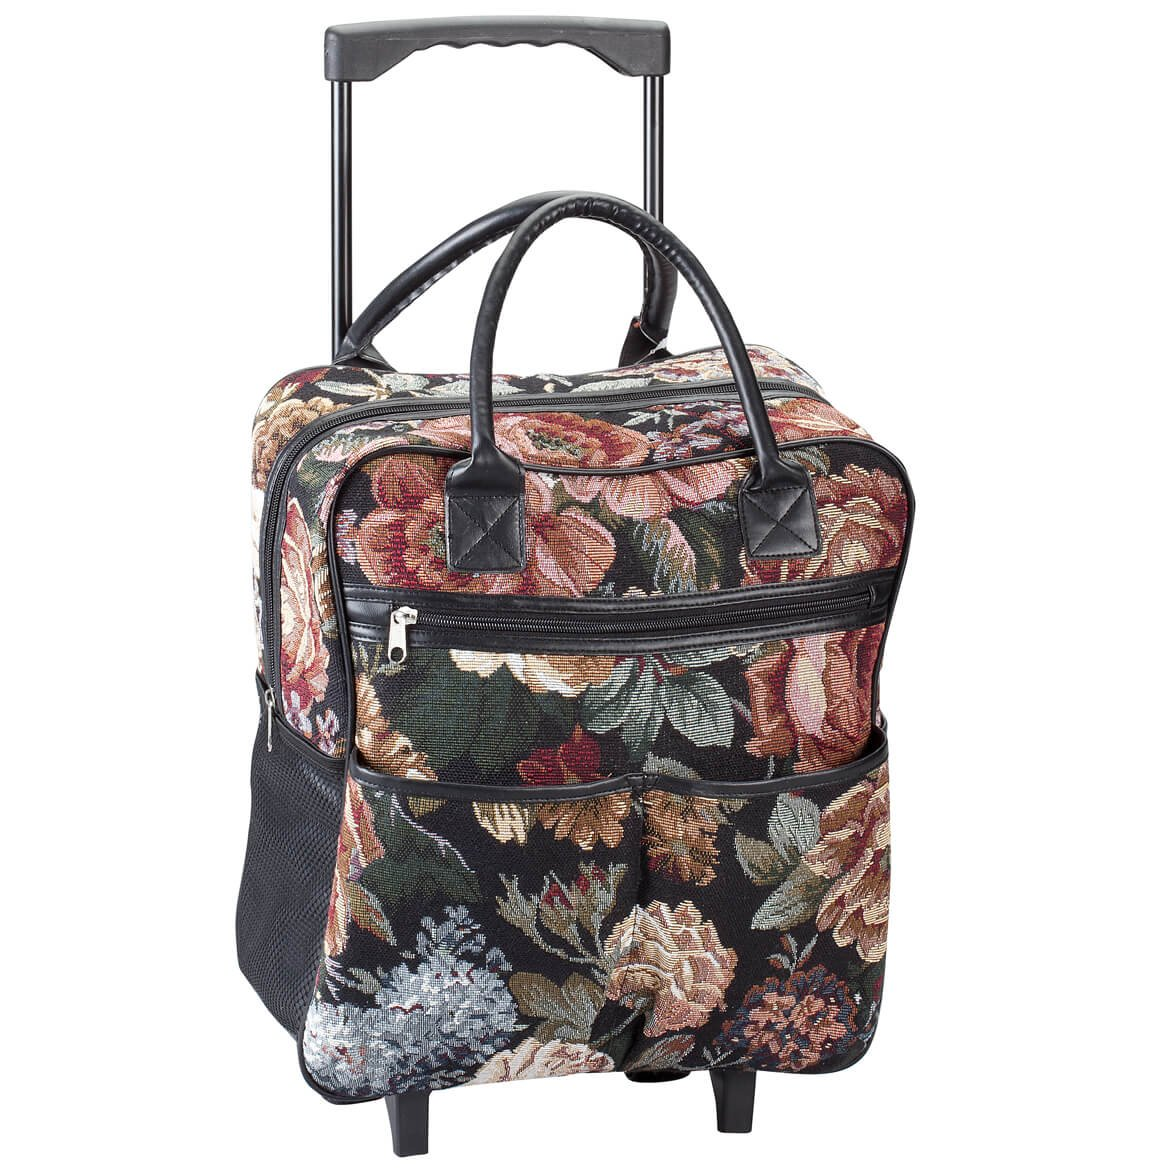 Ambesonne Floral Gym Bag Large Weekender Carry-on Lace Trippy Flowers Leaf